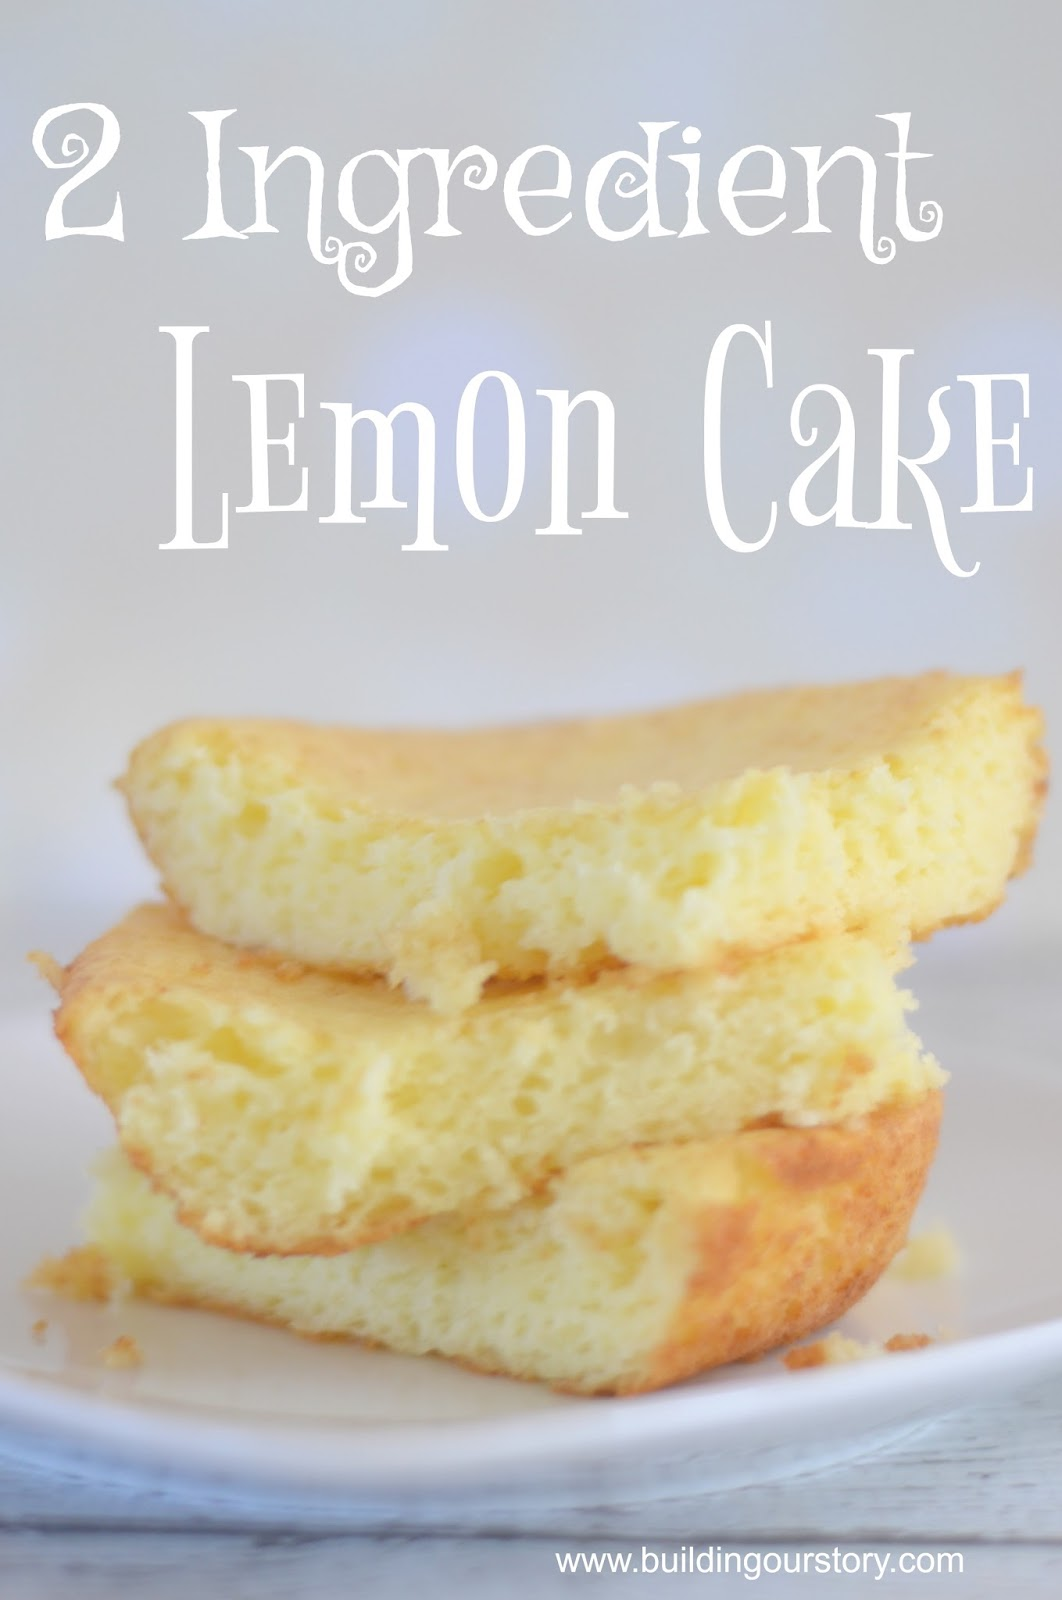 2 Ingredient Lemon Cake Light Building Our Story